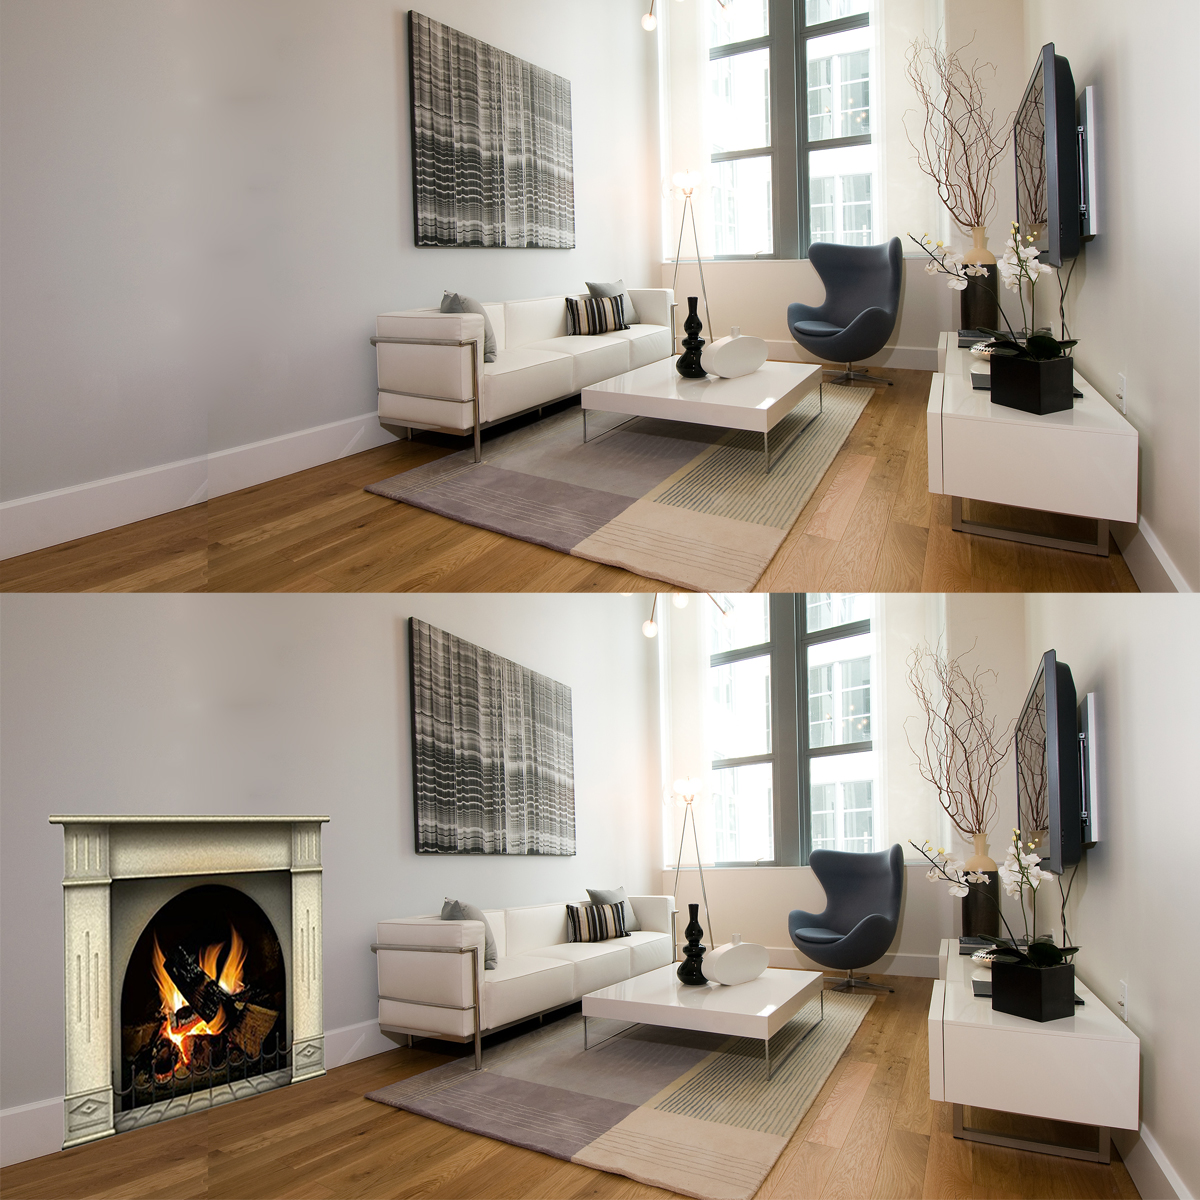 Want a replica fireplace for Christmas stockings and photos? A 3-D cardboard fireplace or removable vinyl wall fireplace decal can be a great substitute.